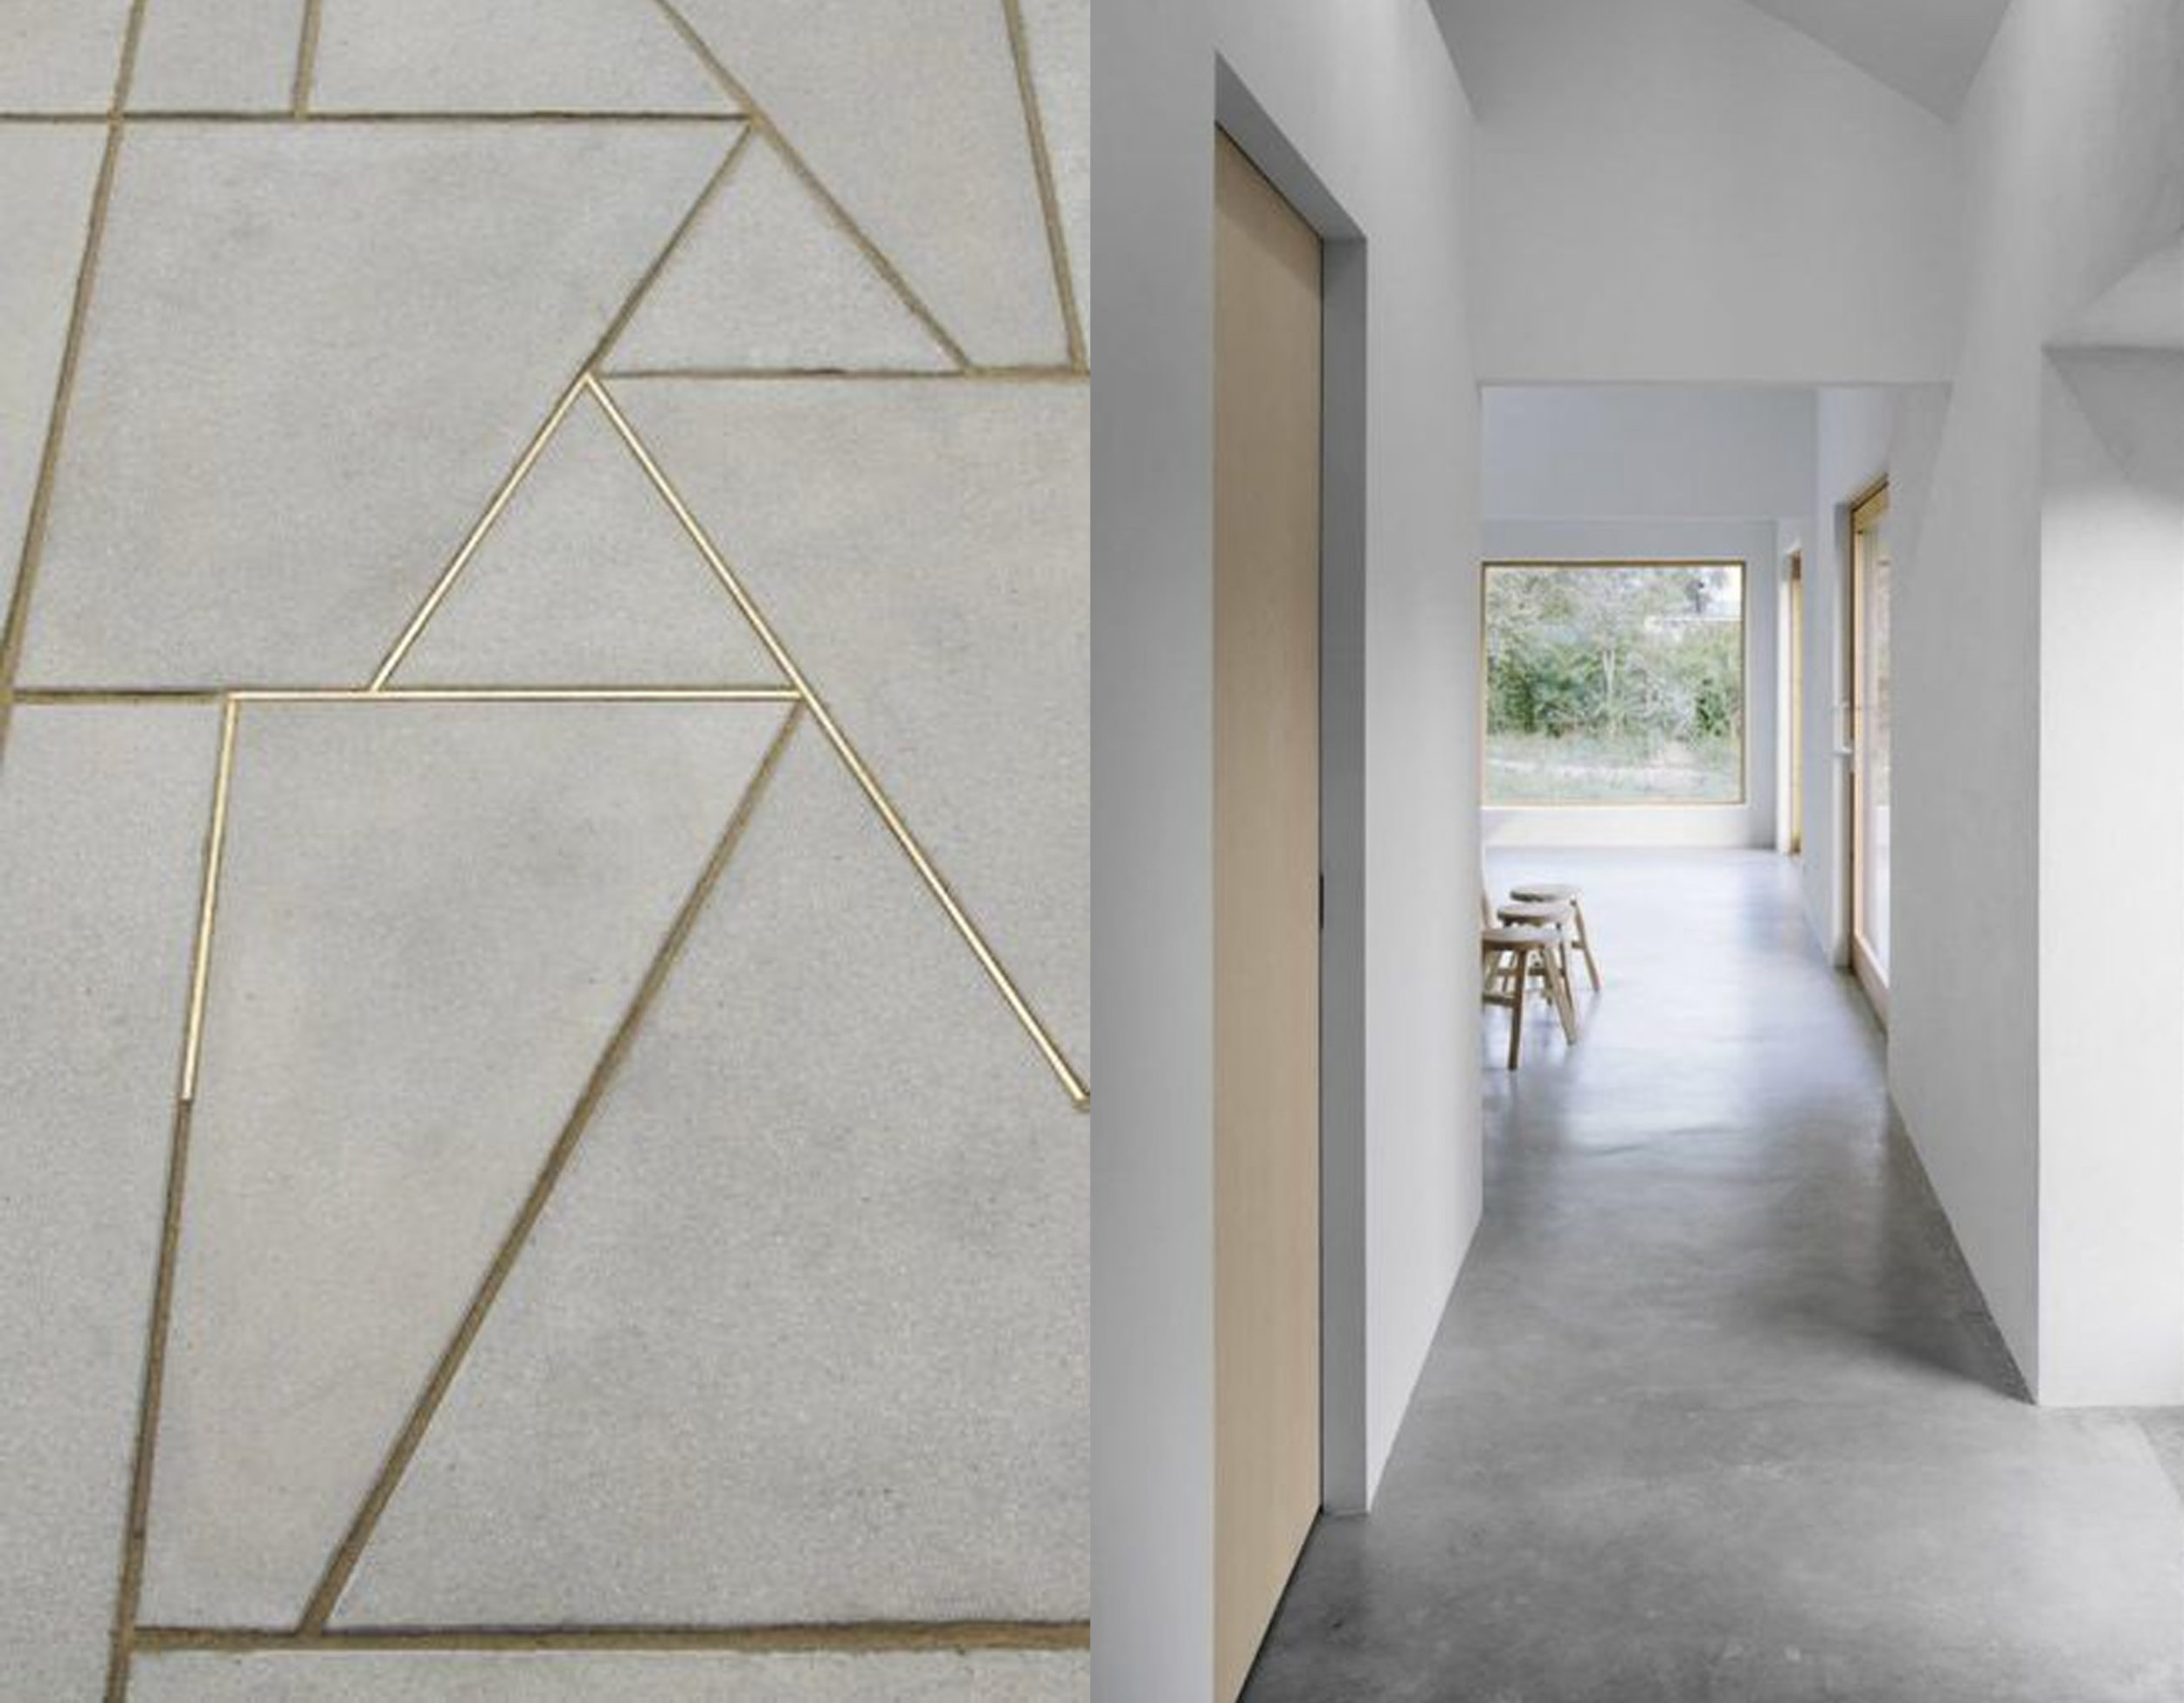 concrete + gold via  Lex De Gooijer  - minimalist interior via  Pinterest